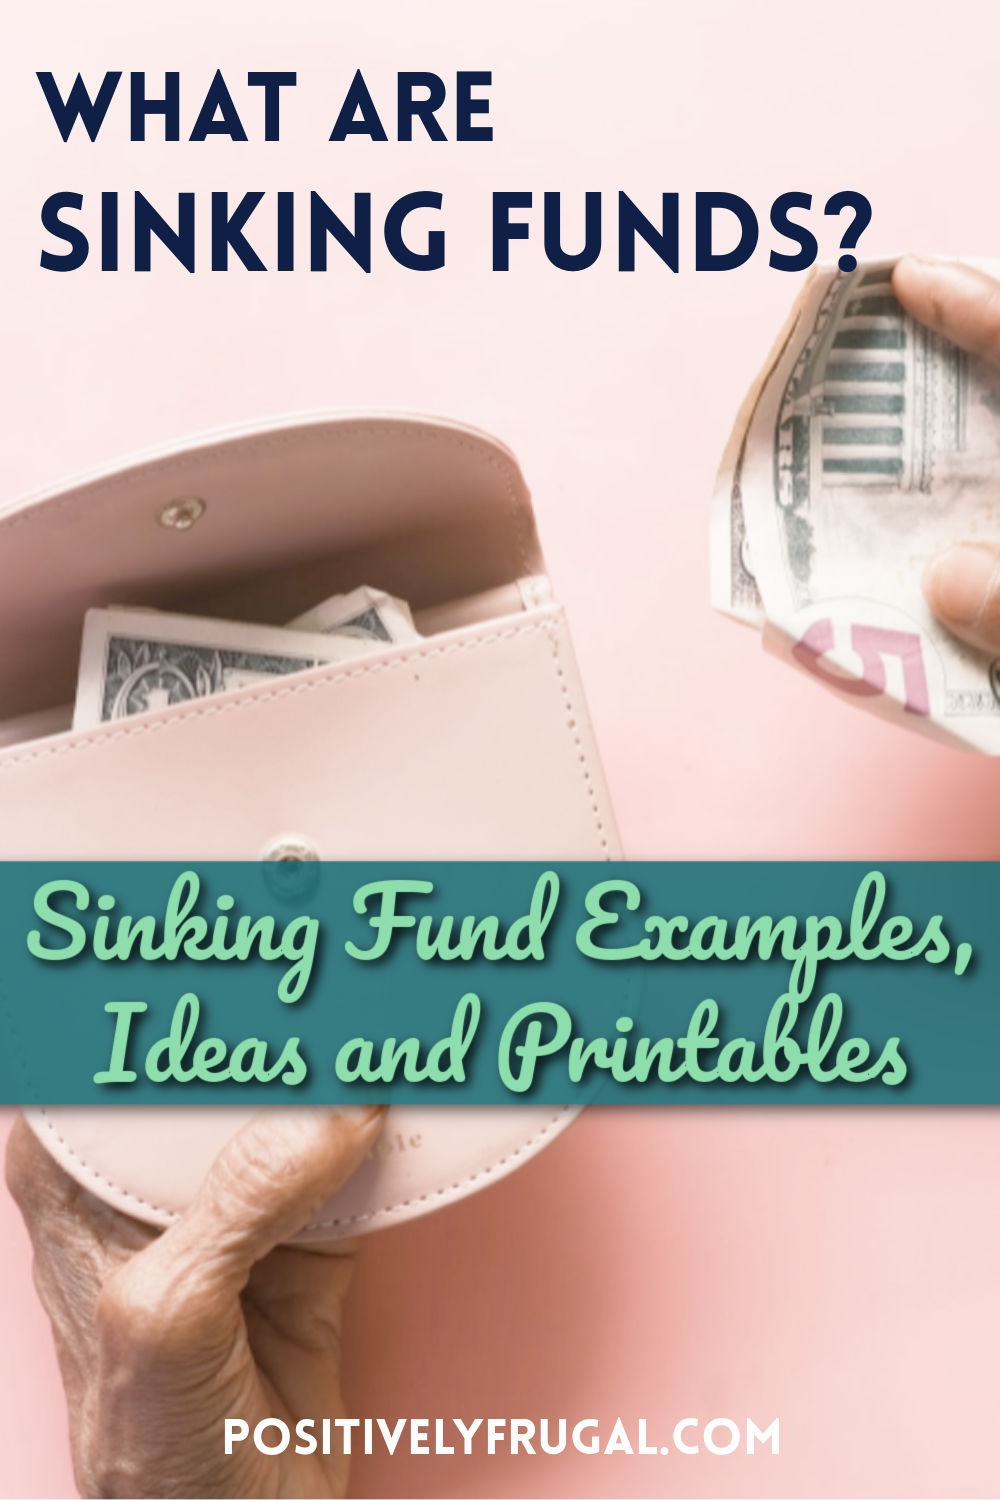 What Are Sinking Funds by PositivelyFrugal.com